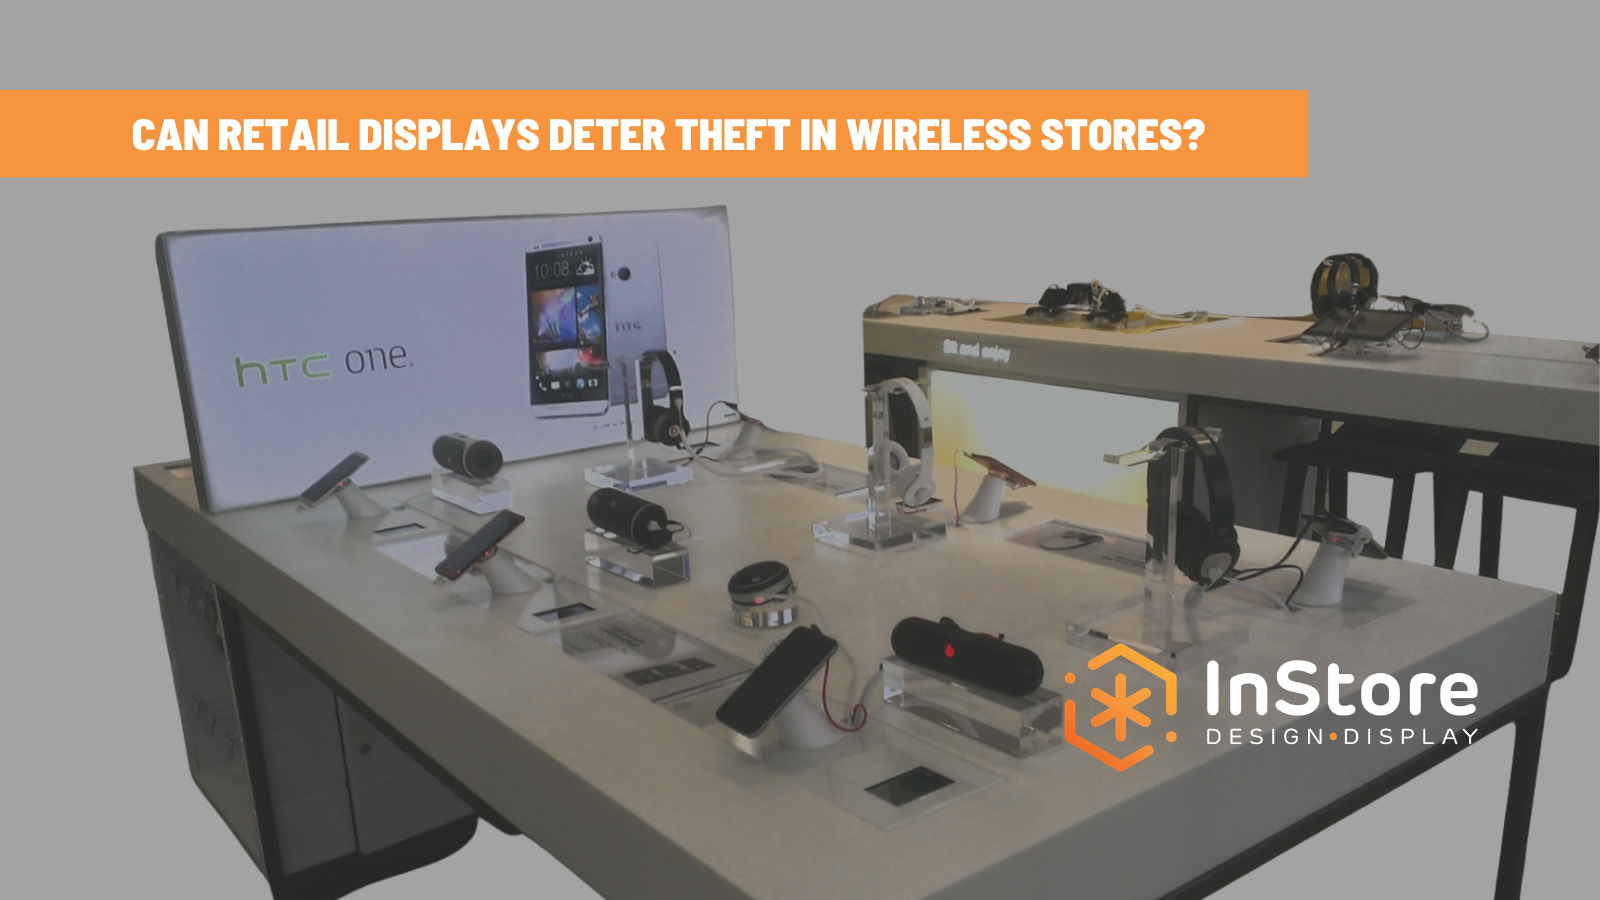 5 Tips Wireless Stores Can Use to Prevent Retail Theft